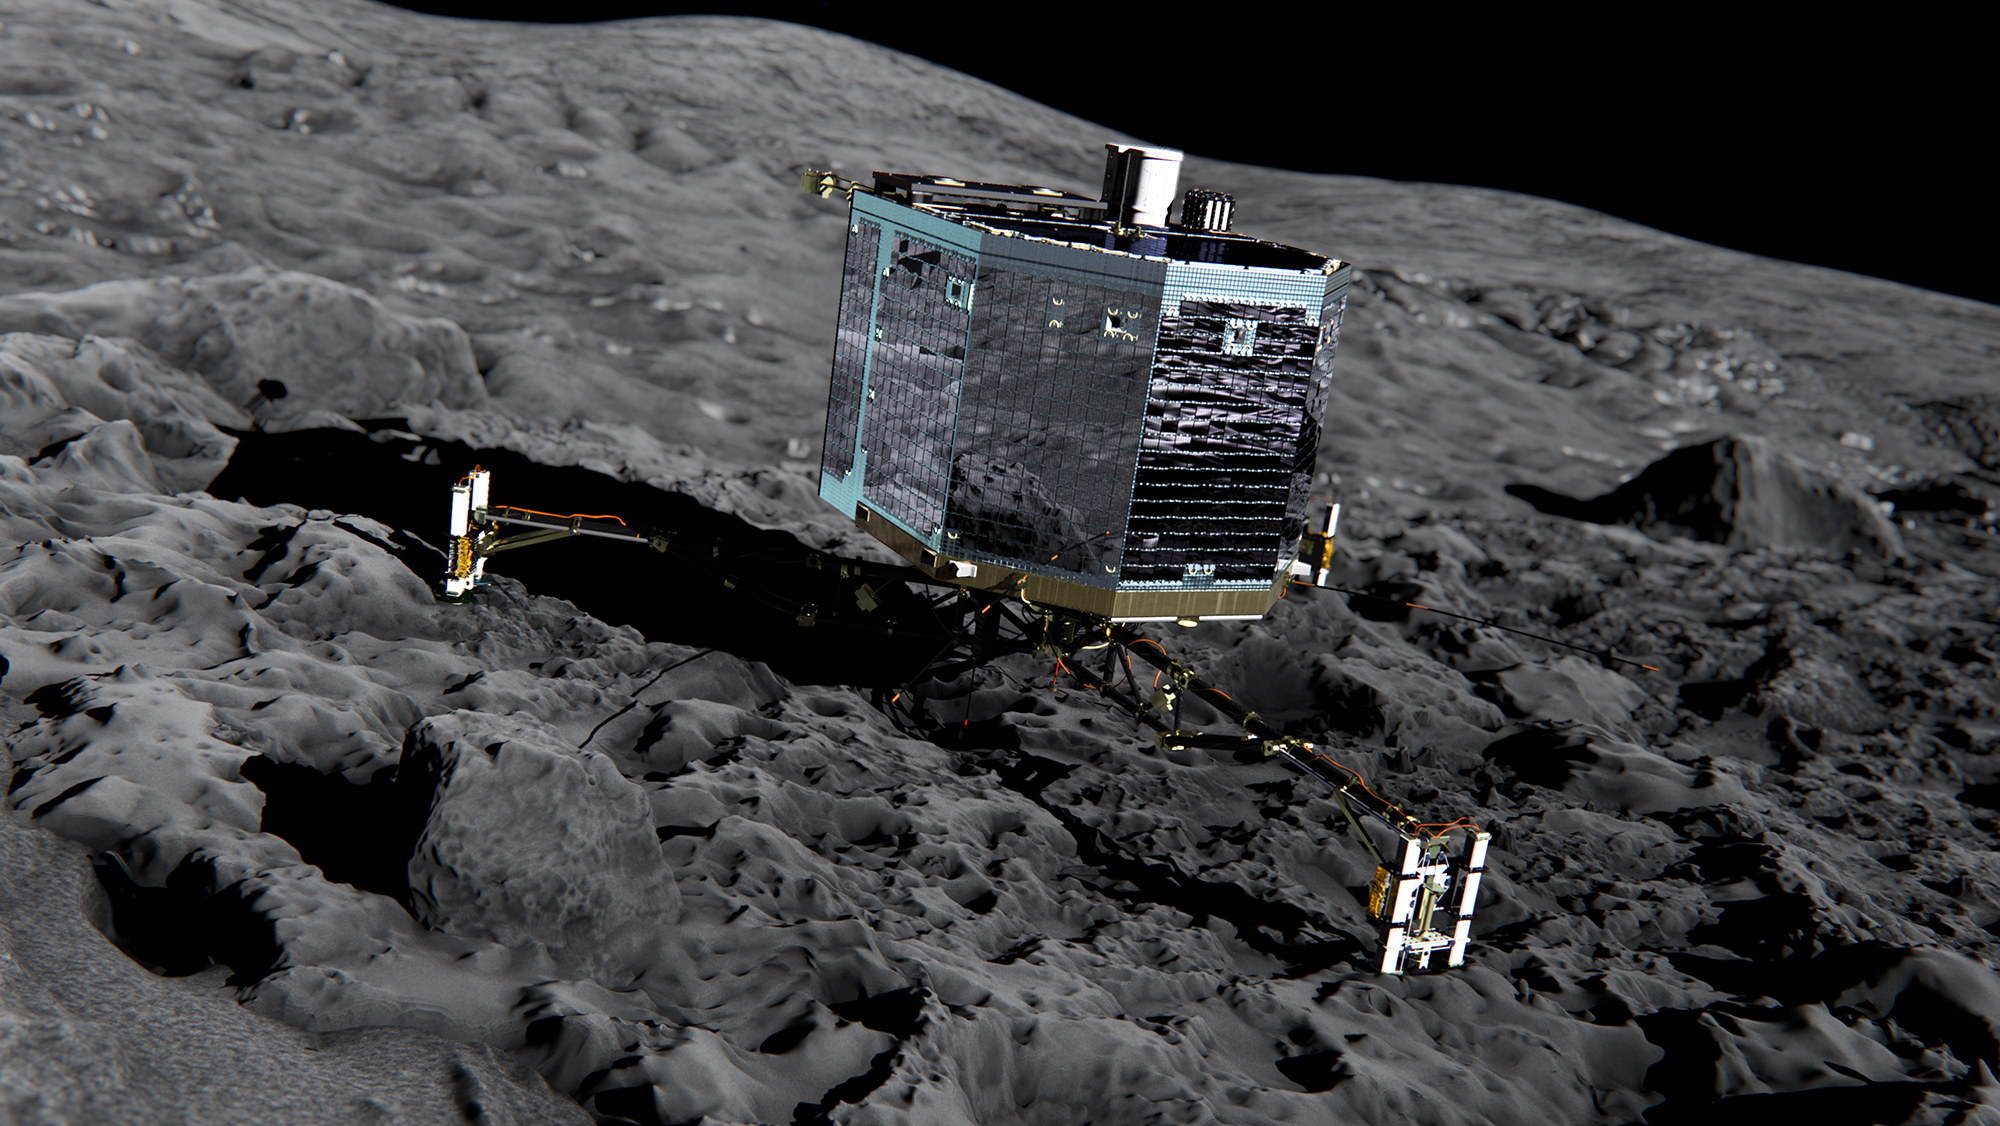 A simulated picture of the Philae spacecraft on Comet 67P